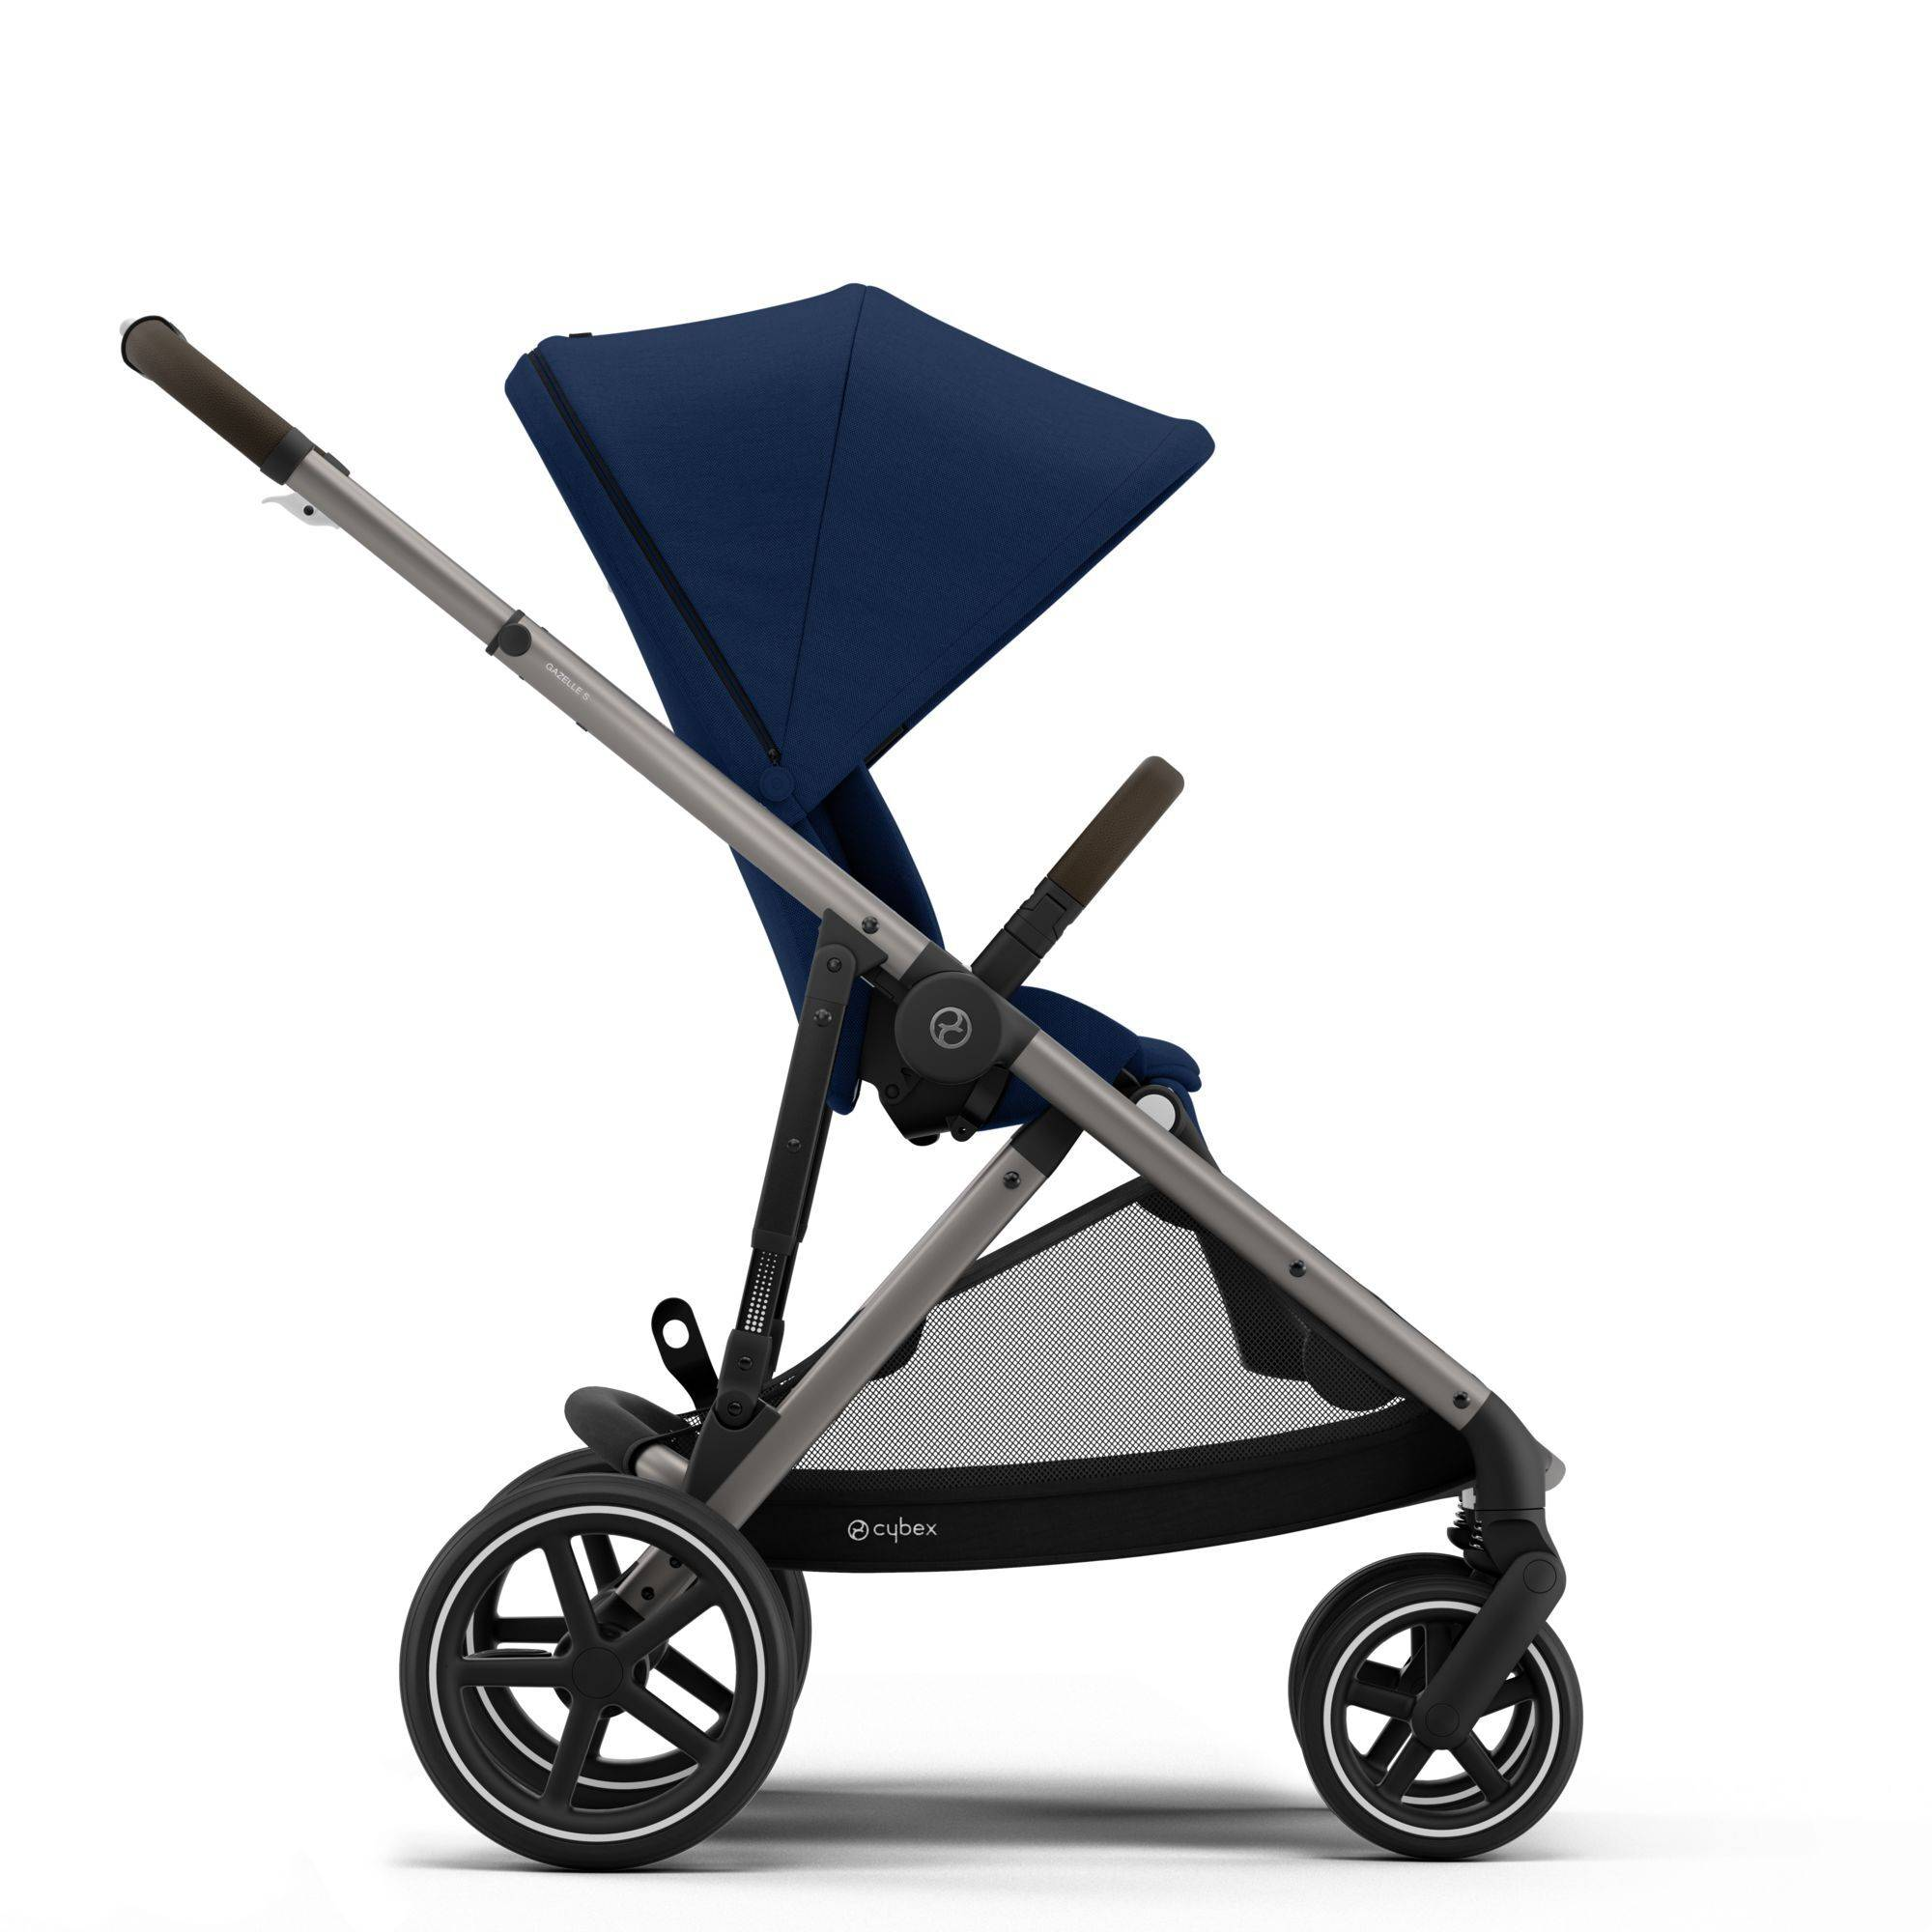 the Cybex Gazelle S stroller shop Kidsland